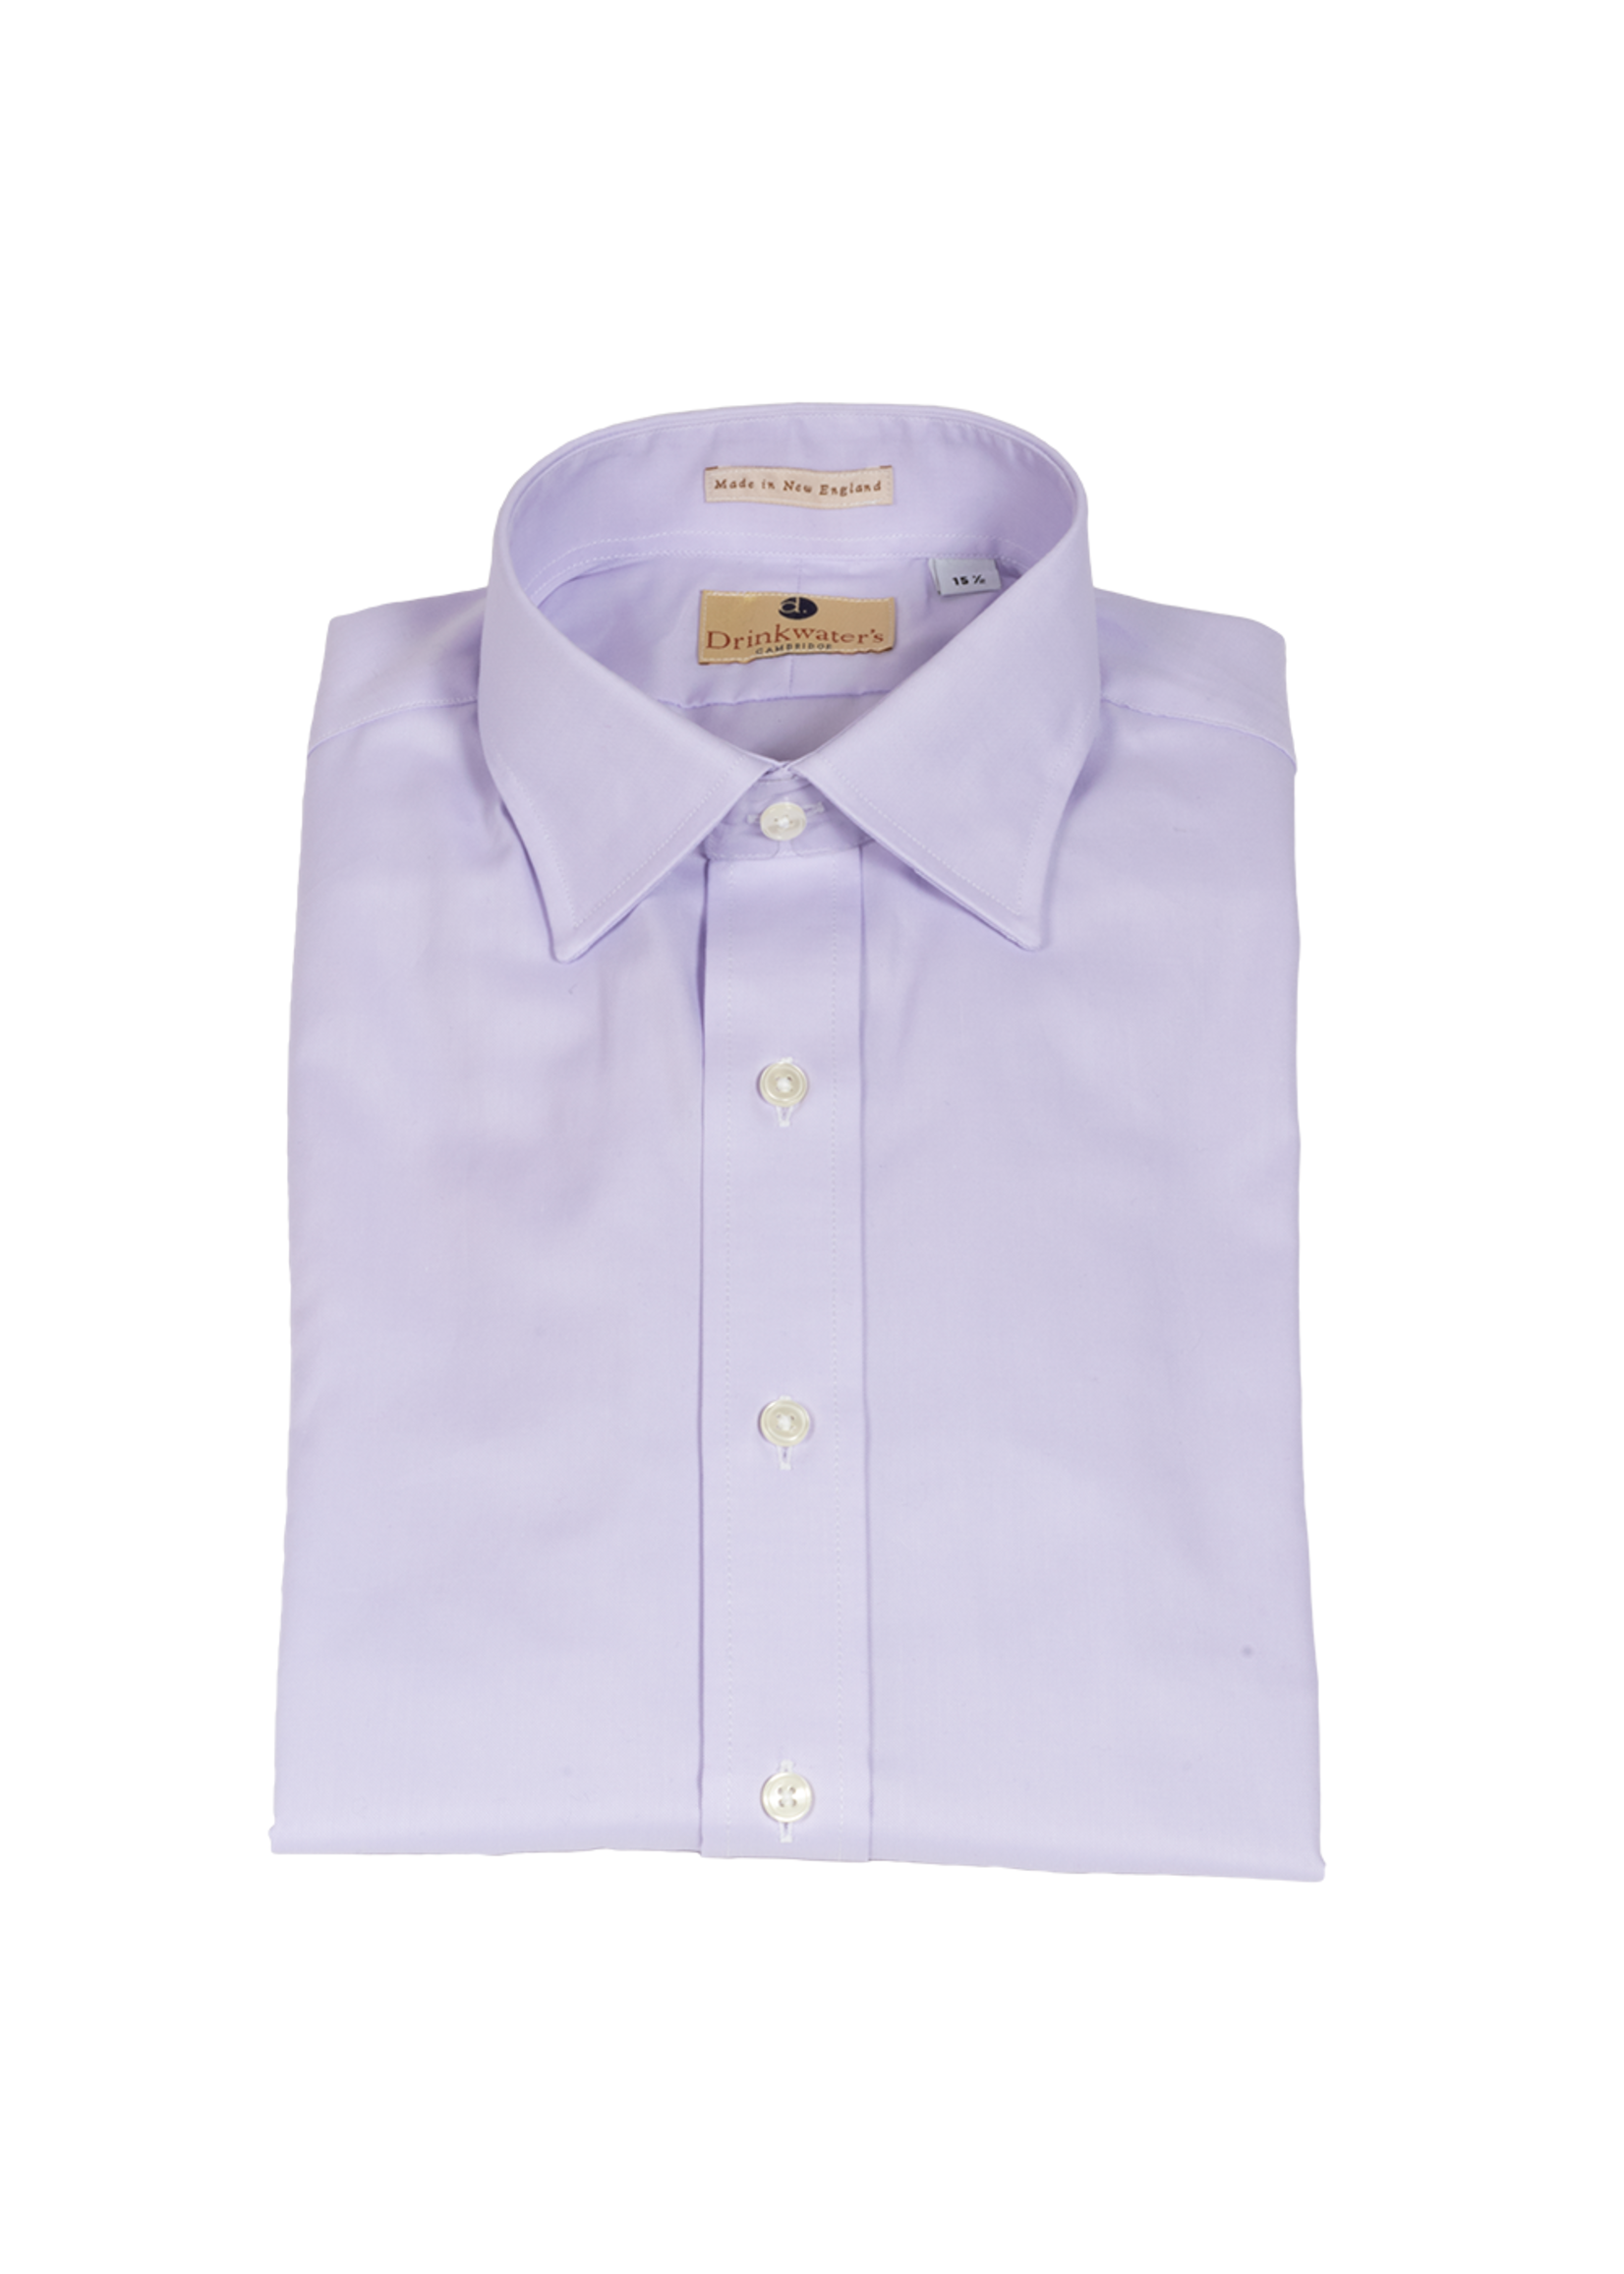 Drinkwater's Drinkwater's Lavender Queen's Oxford Dress Shirt